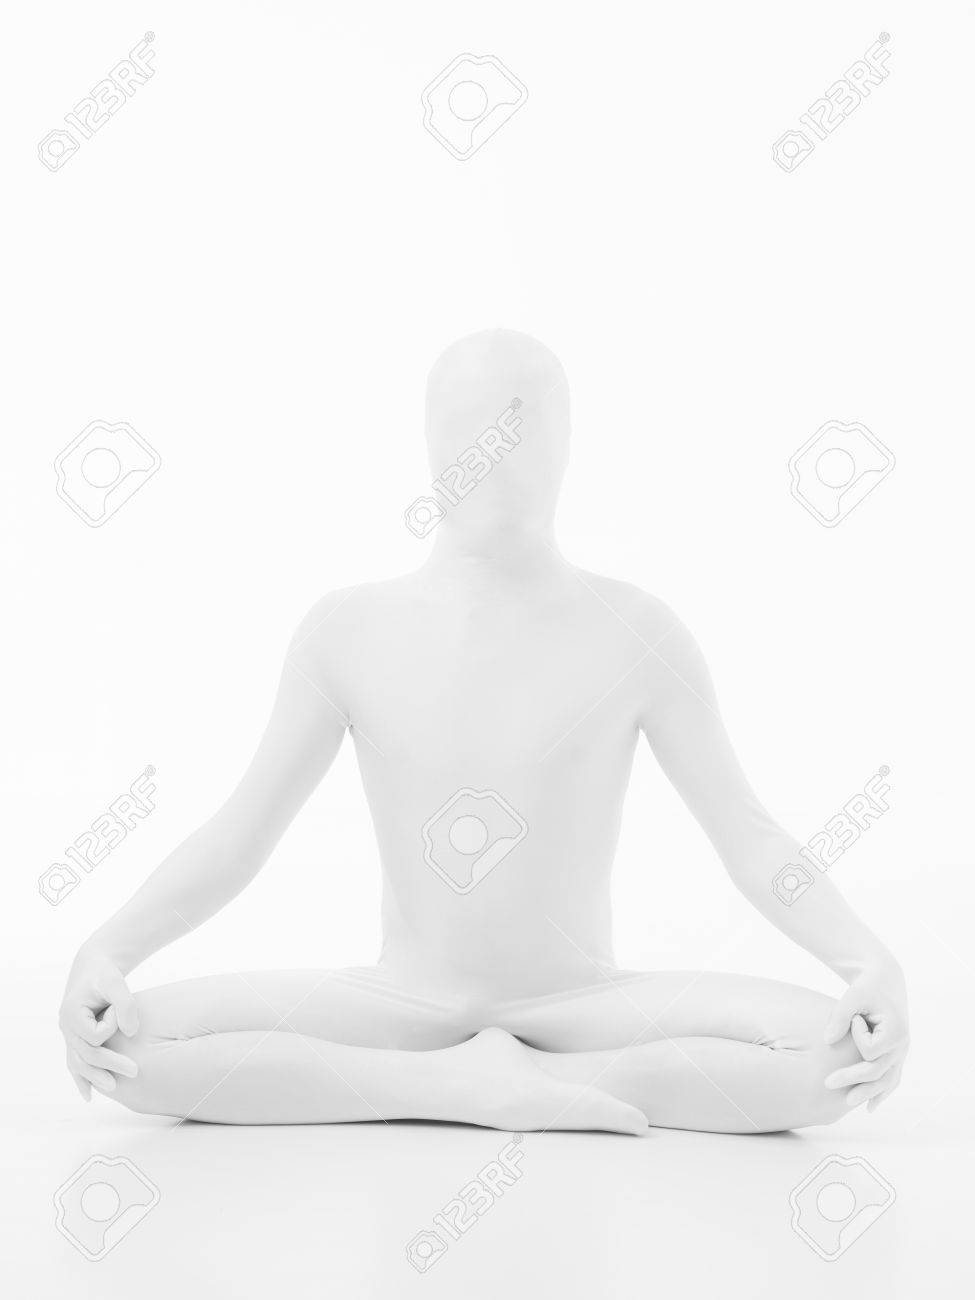 faceless man dressed in white sitting in yoga lotus position, front view Stock Photo - 28075847